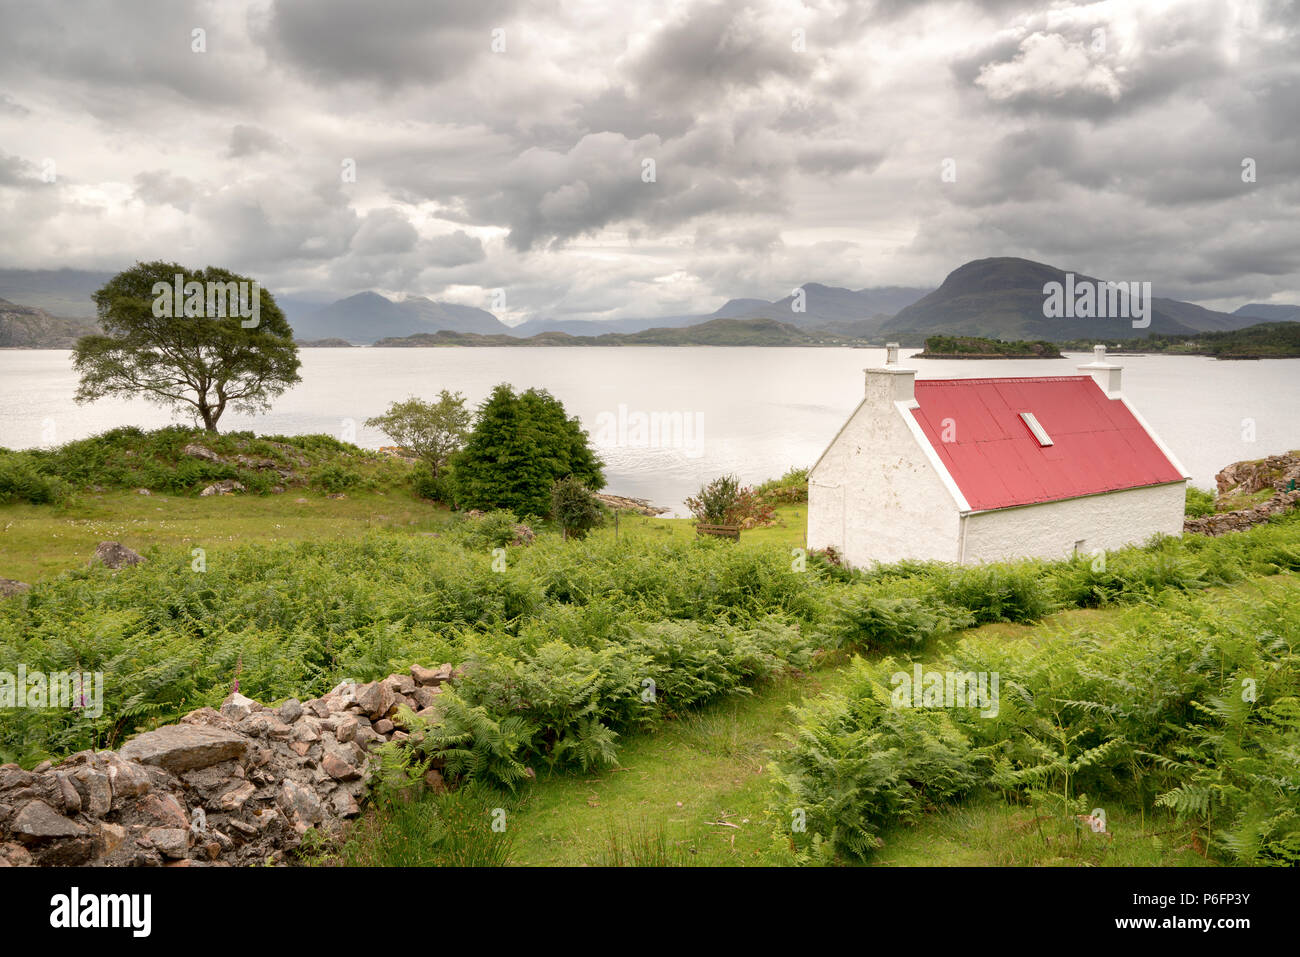 Red Roof Cottage at shieldaig, Scotland. Part of the North coast 500 route. - Stock Image